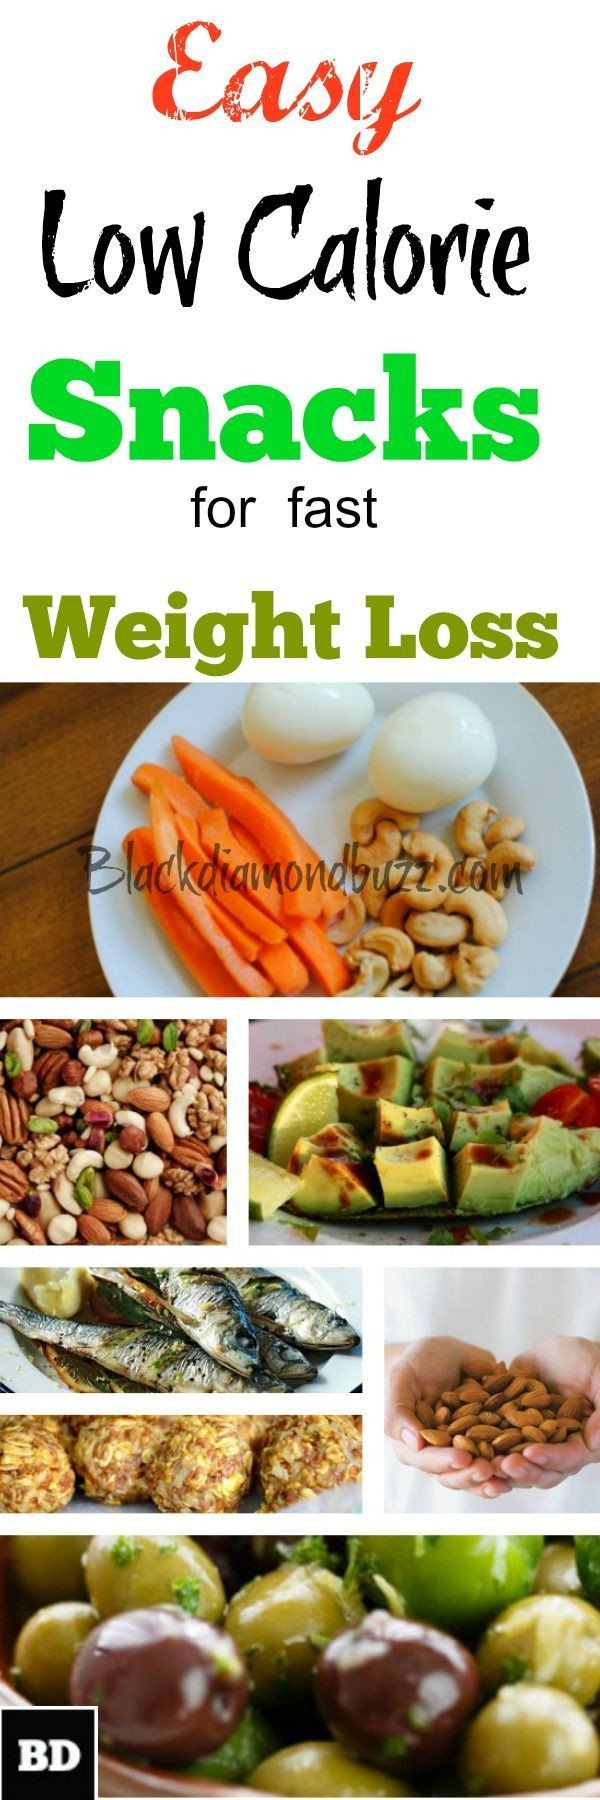 Best Healthy Snacks For Weight Loss  Best 25 Weight loss snacks ideas on Pinterest